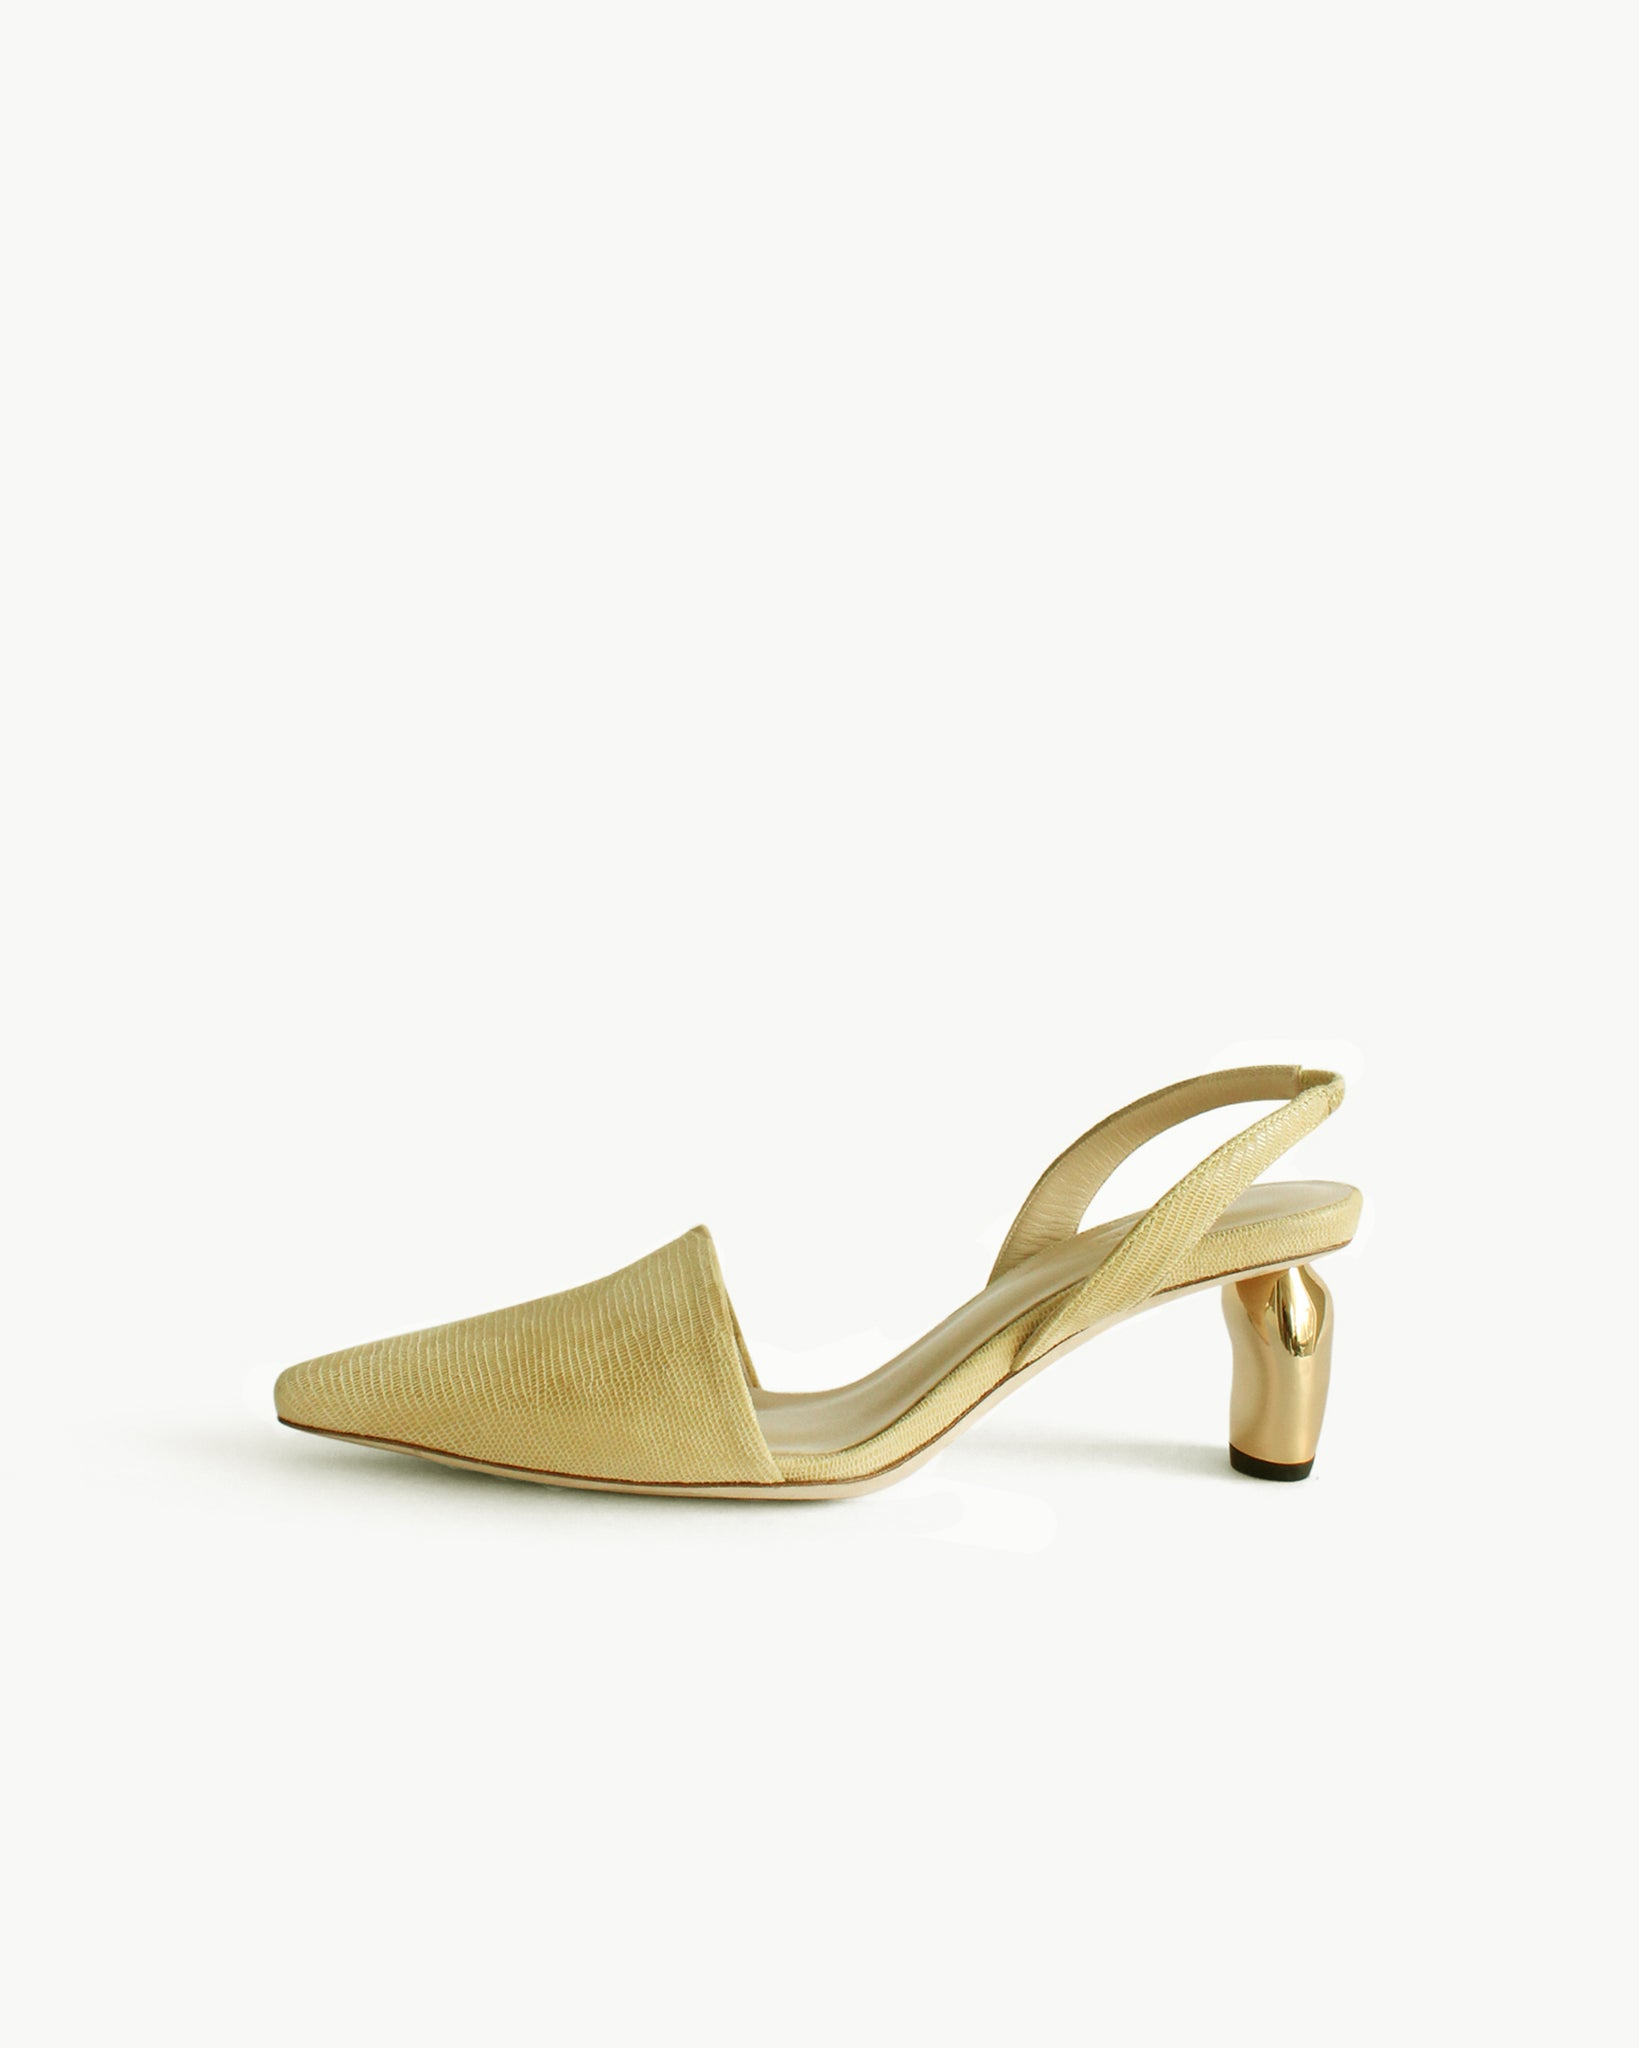 Conie Slingbacks Heels Leather Lizard Lemon - SPECIAL PRICE